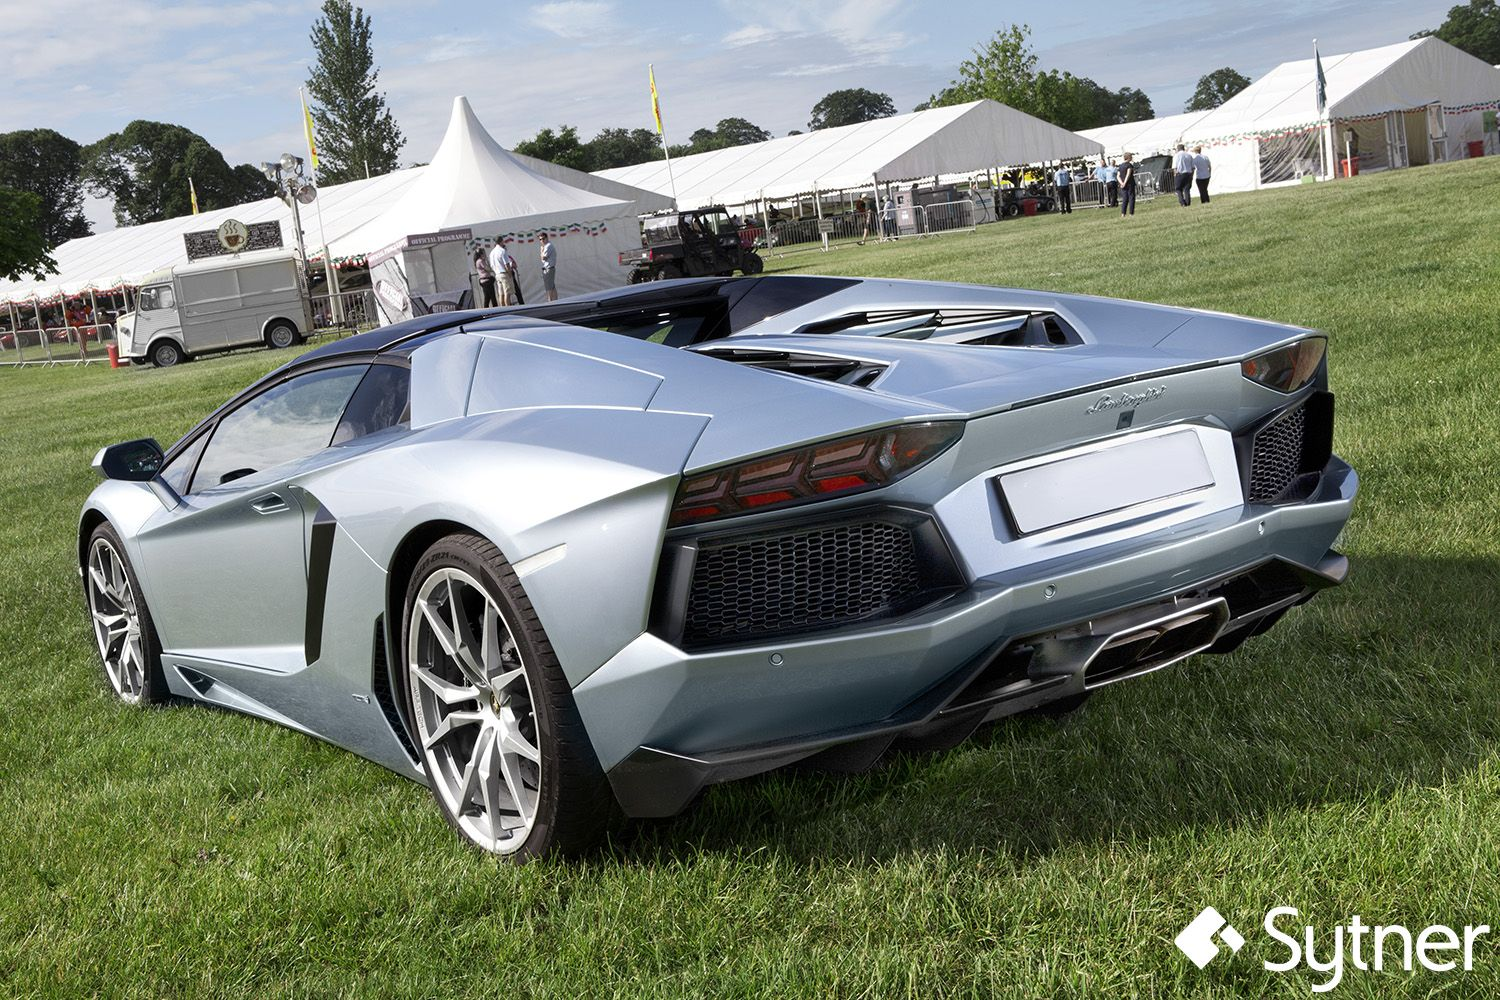 The Stunningly Beautiful Lamborghini Aventador